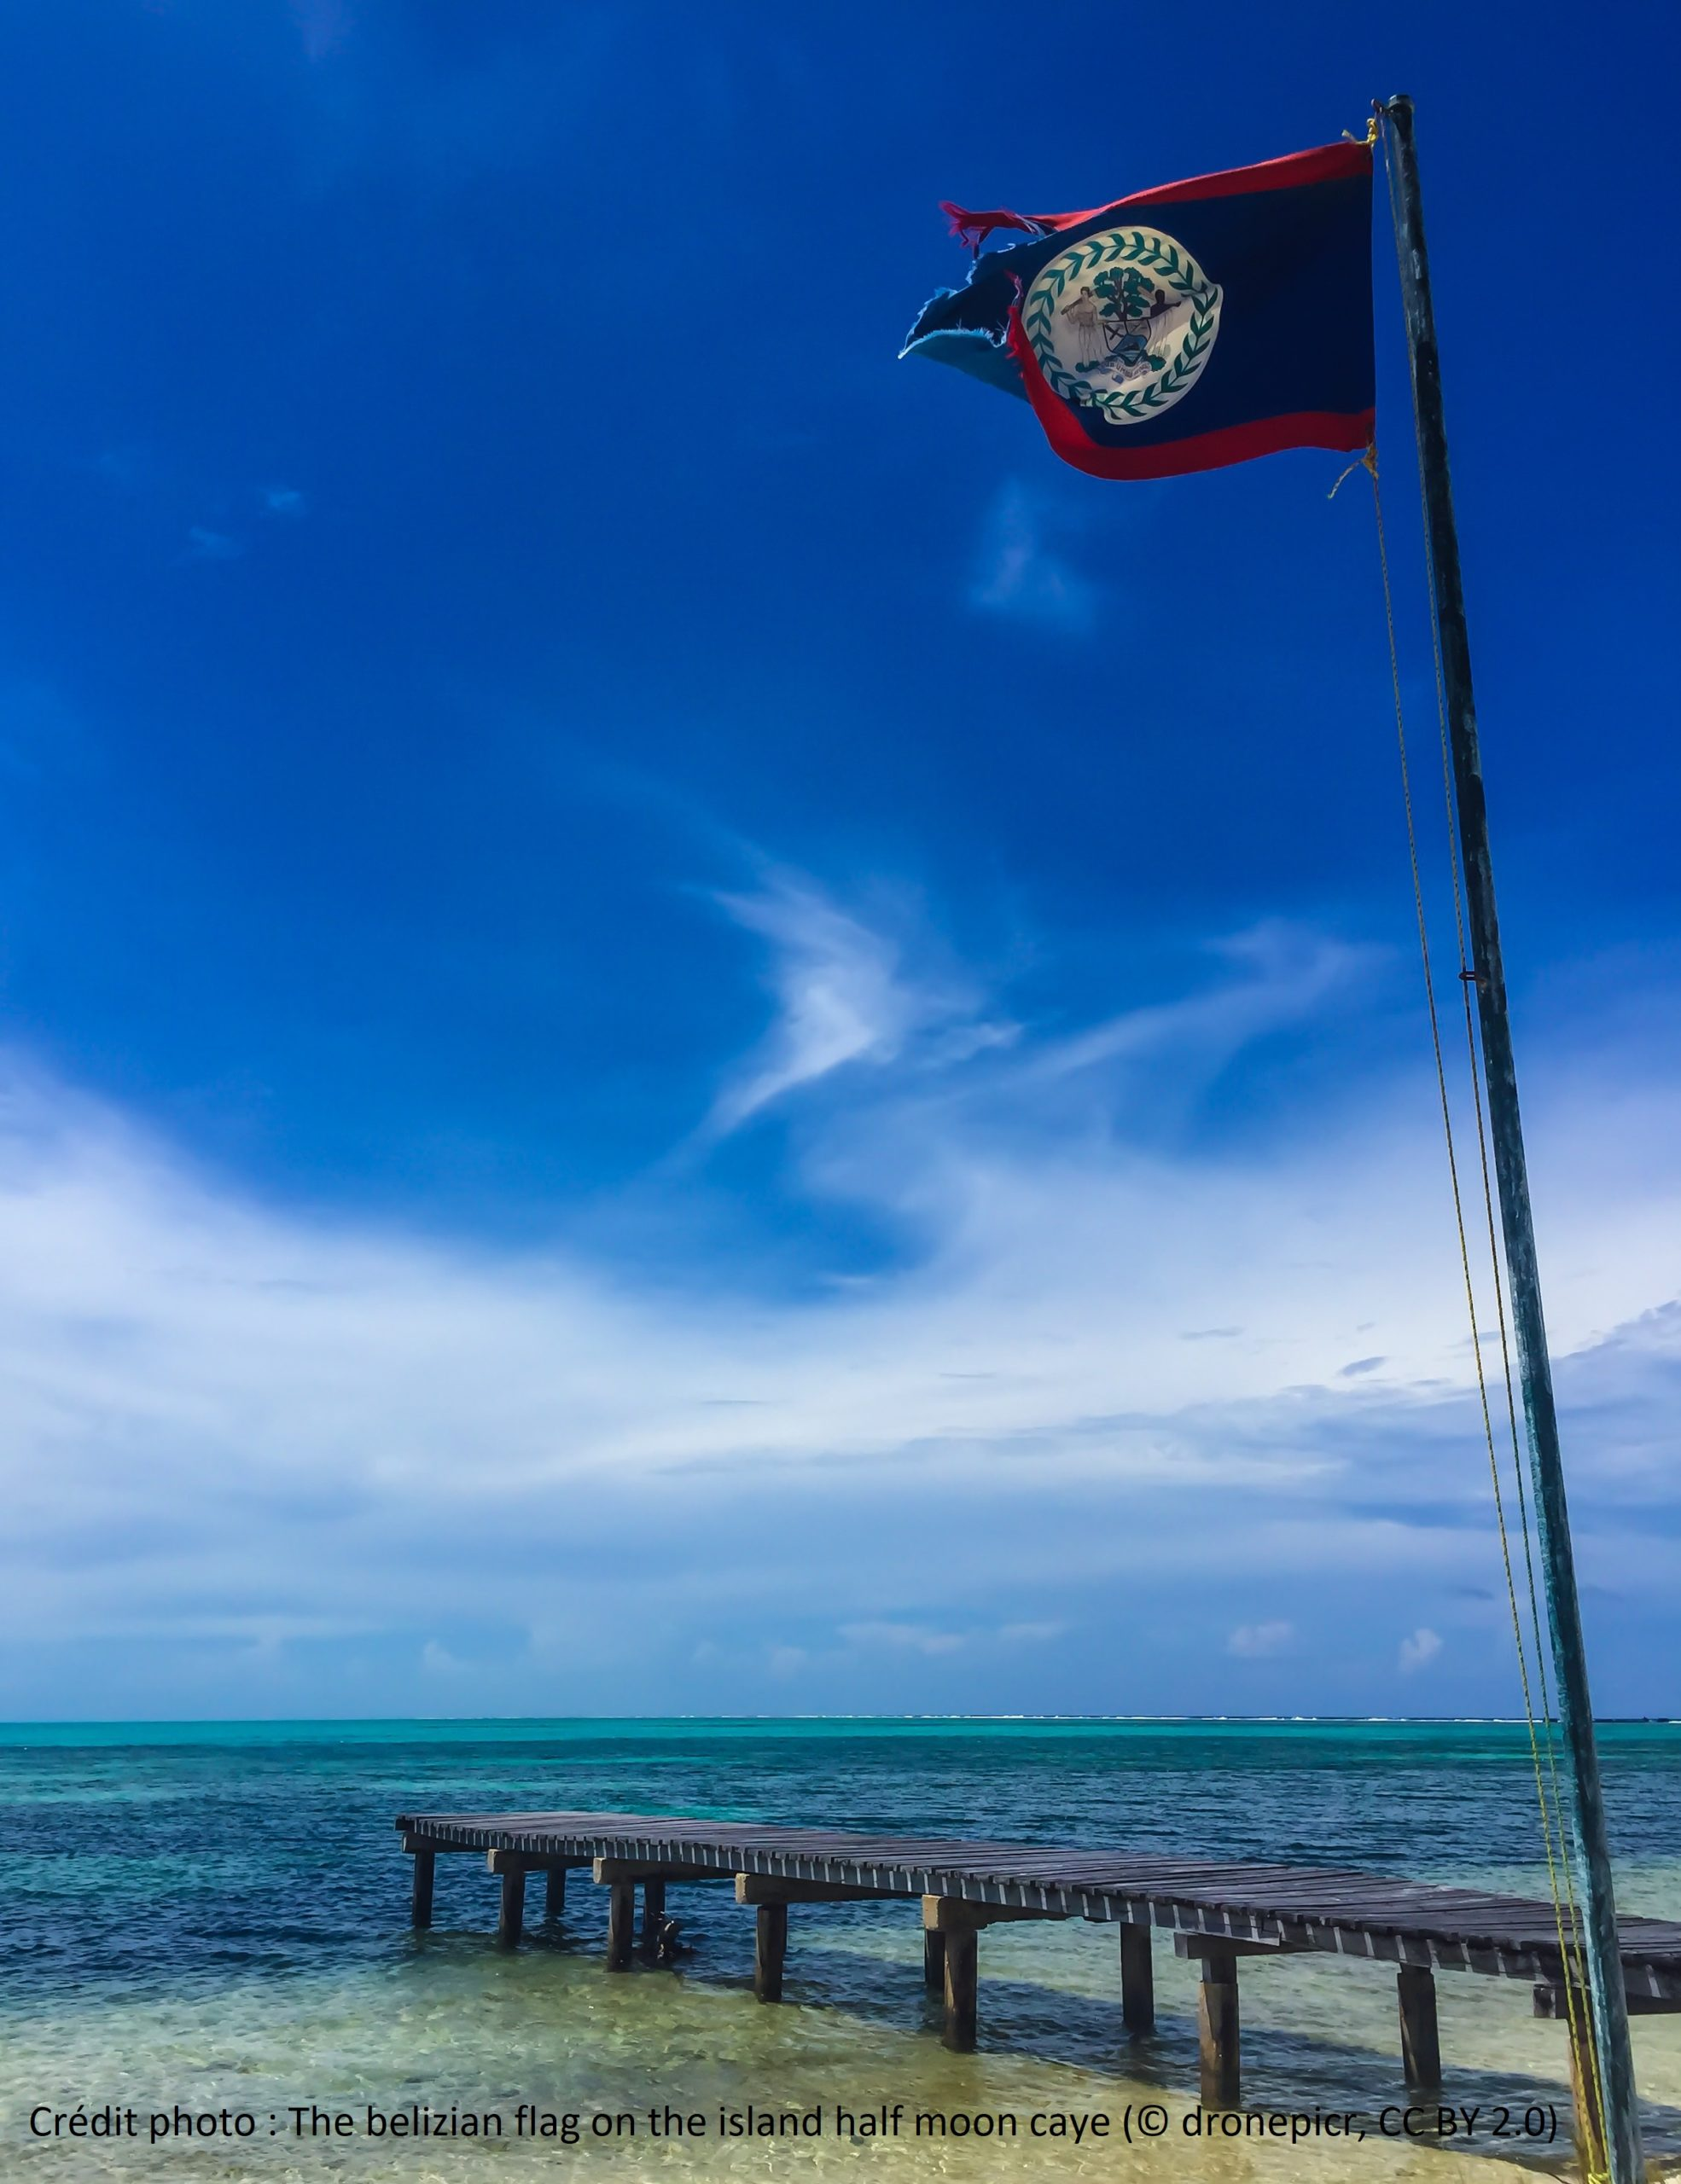 The belizian flag on the island half moon caye (CC BY 2.0)